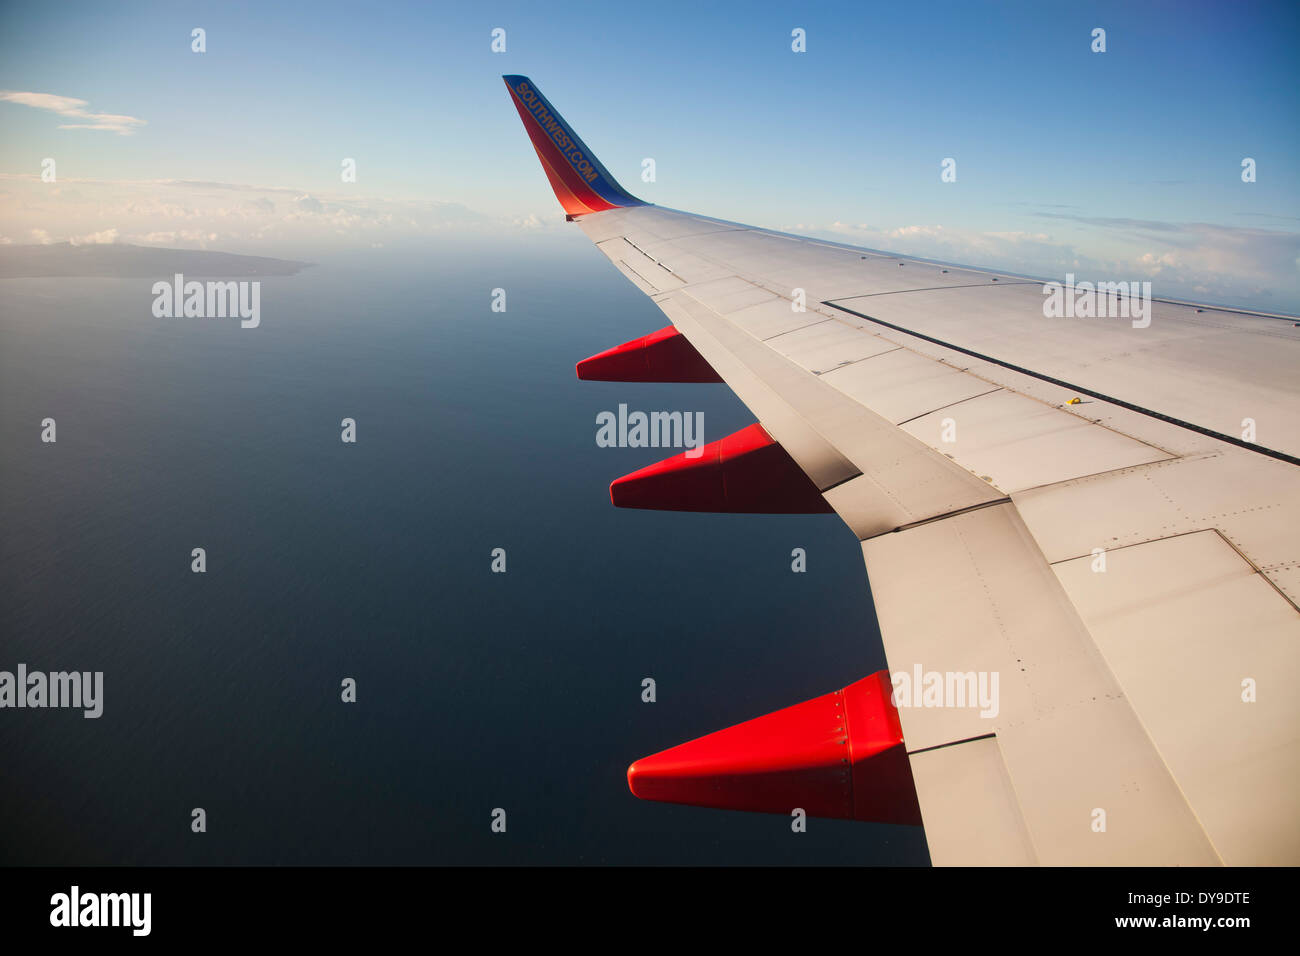 Take off from LAX International airport - Stock Image